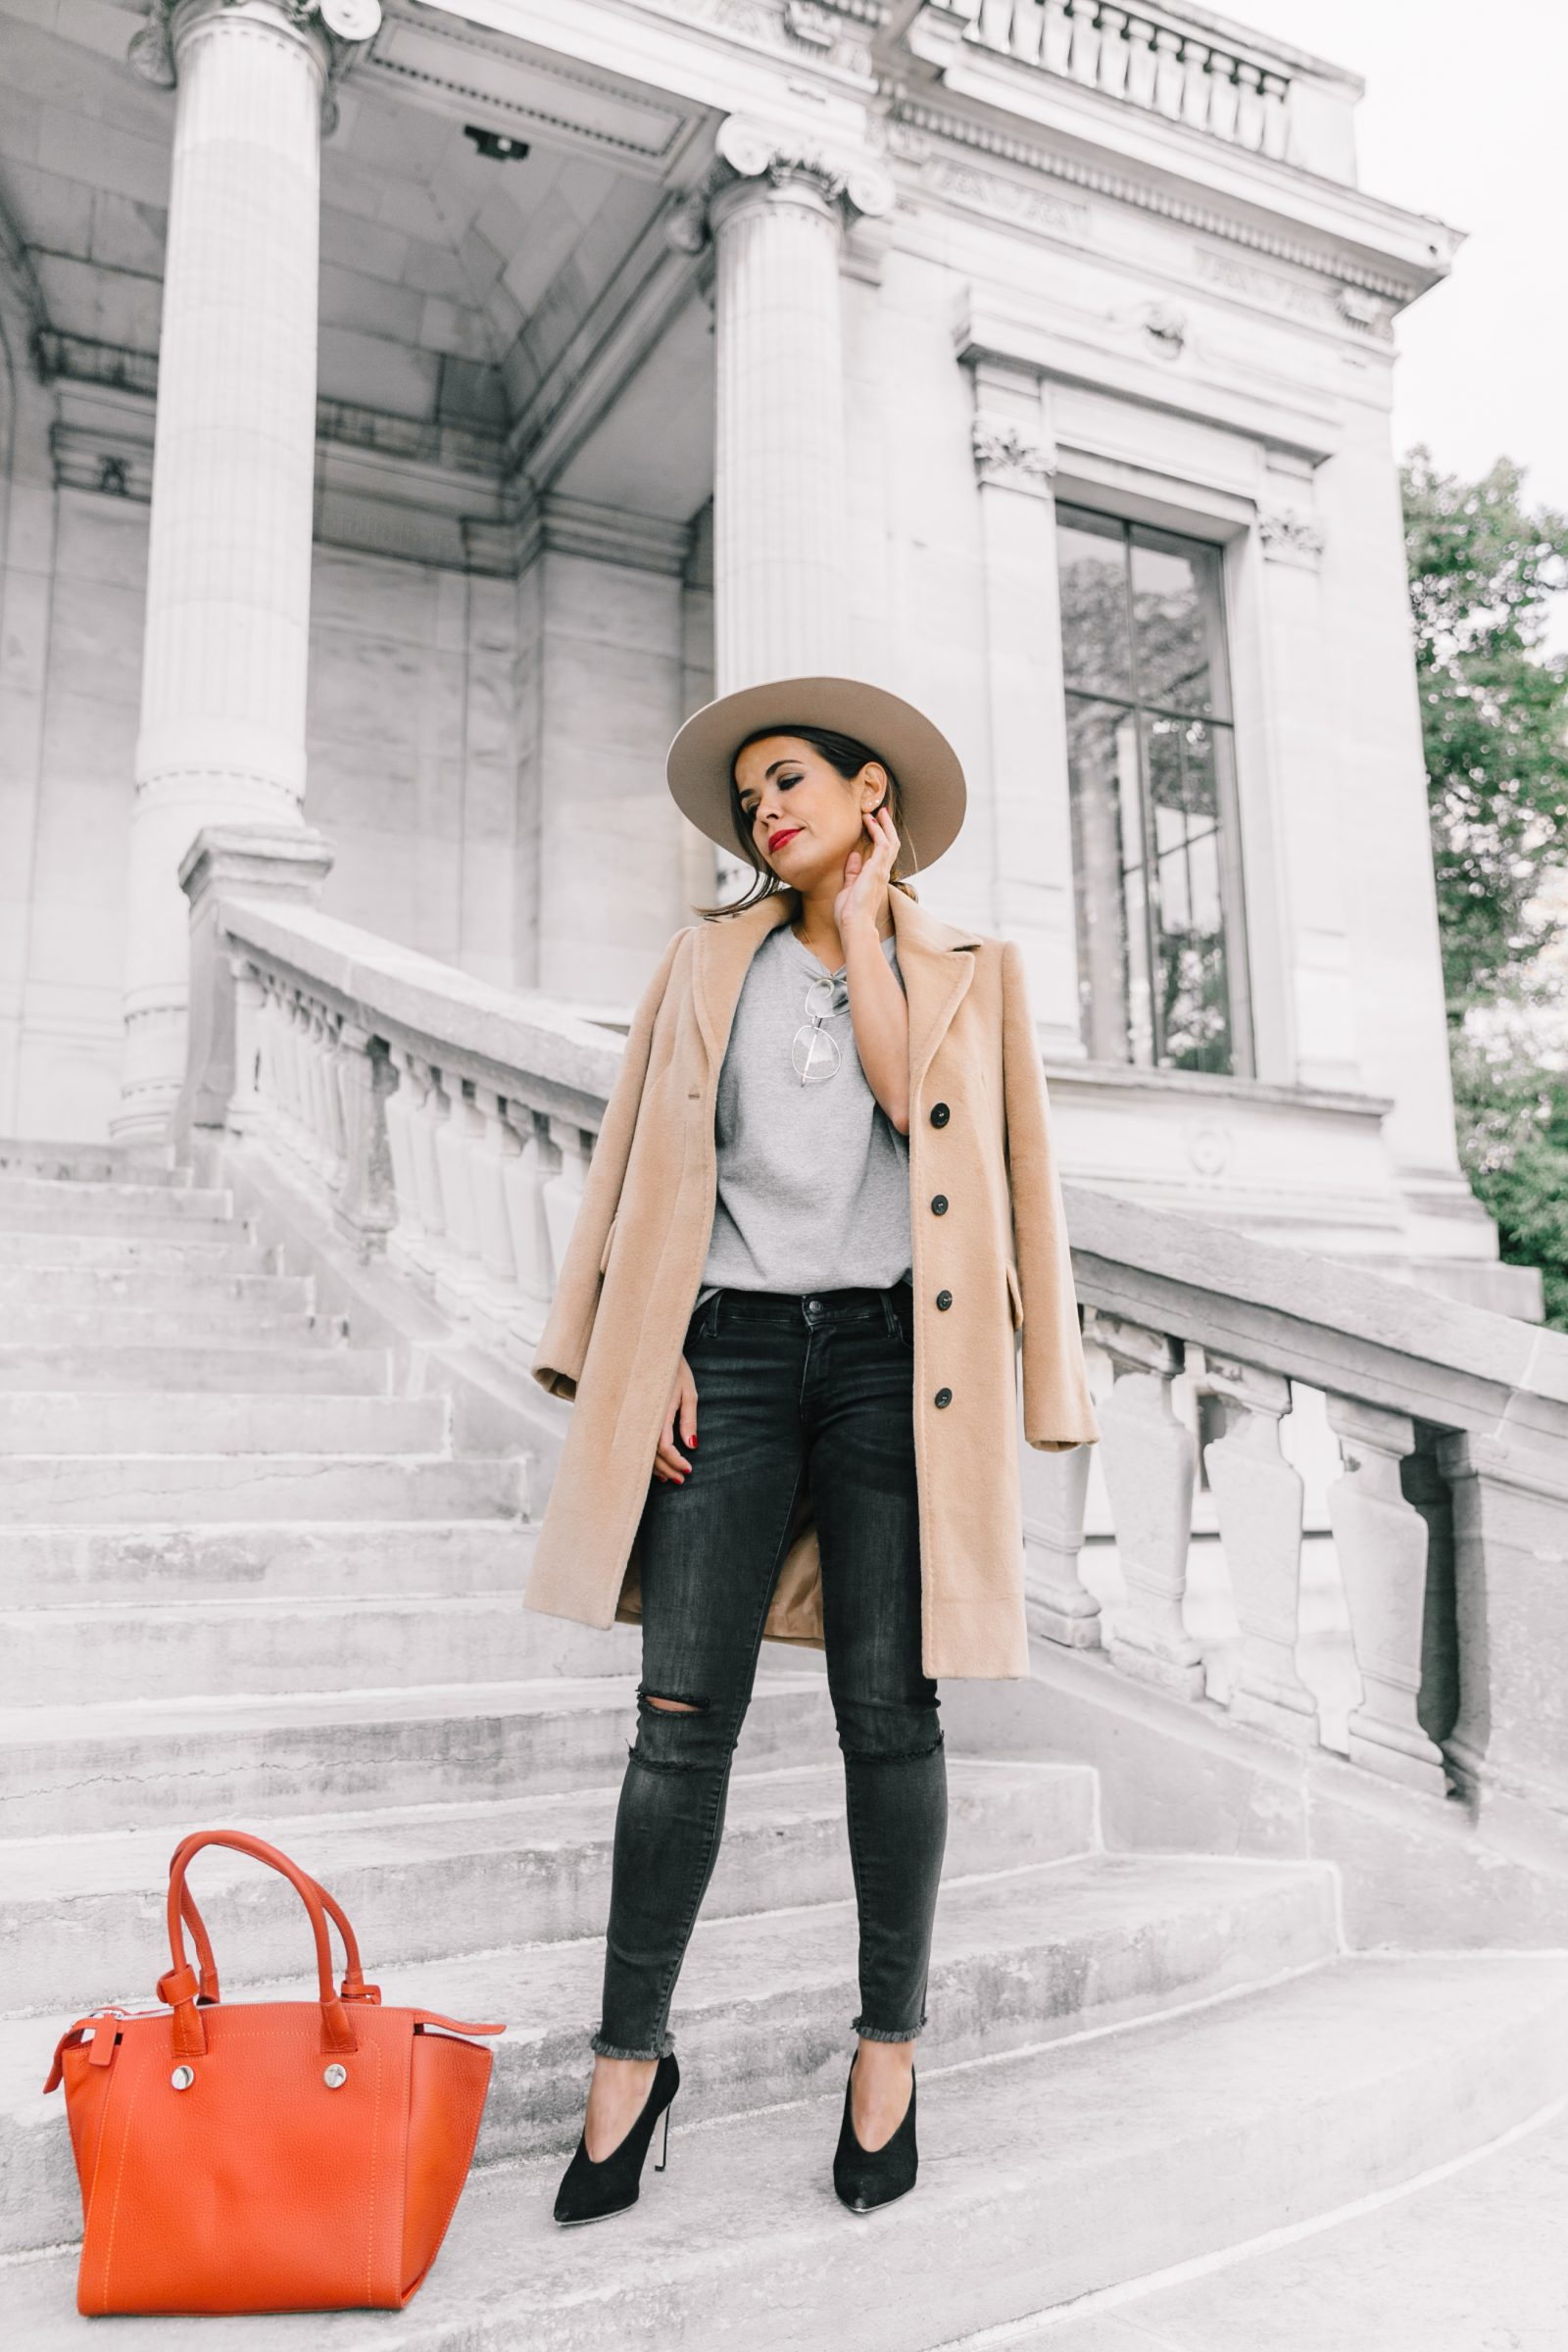 pfw-paris_fashion_week_ss17-street_style-outfits-collage_vintage-max_and_co-camel_coat-orange_bag-skinny_jeans-sandro_shoes-hat-sincerely_jules_jeans-7